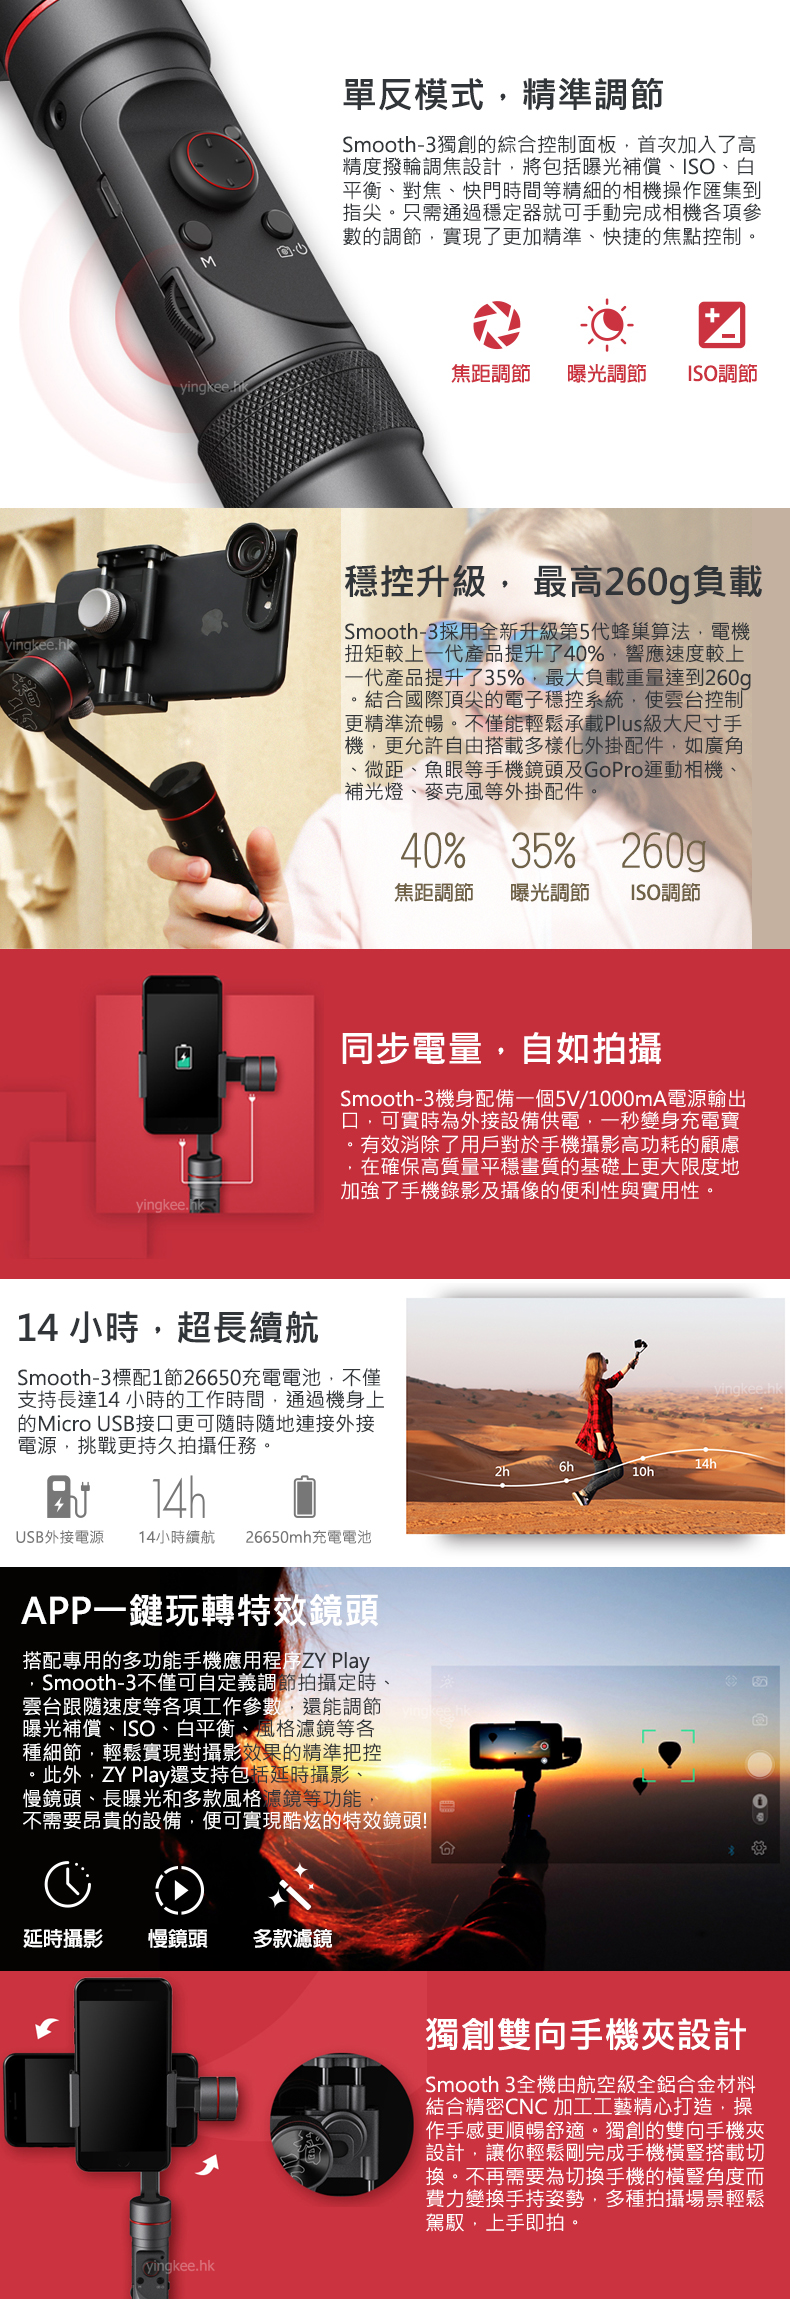 zhiyun-smooth-3-introductory-yingkee.jpg